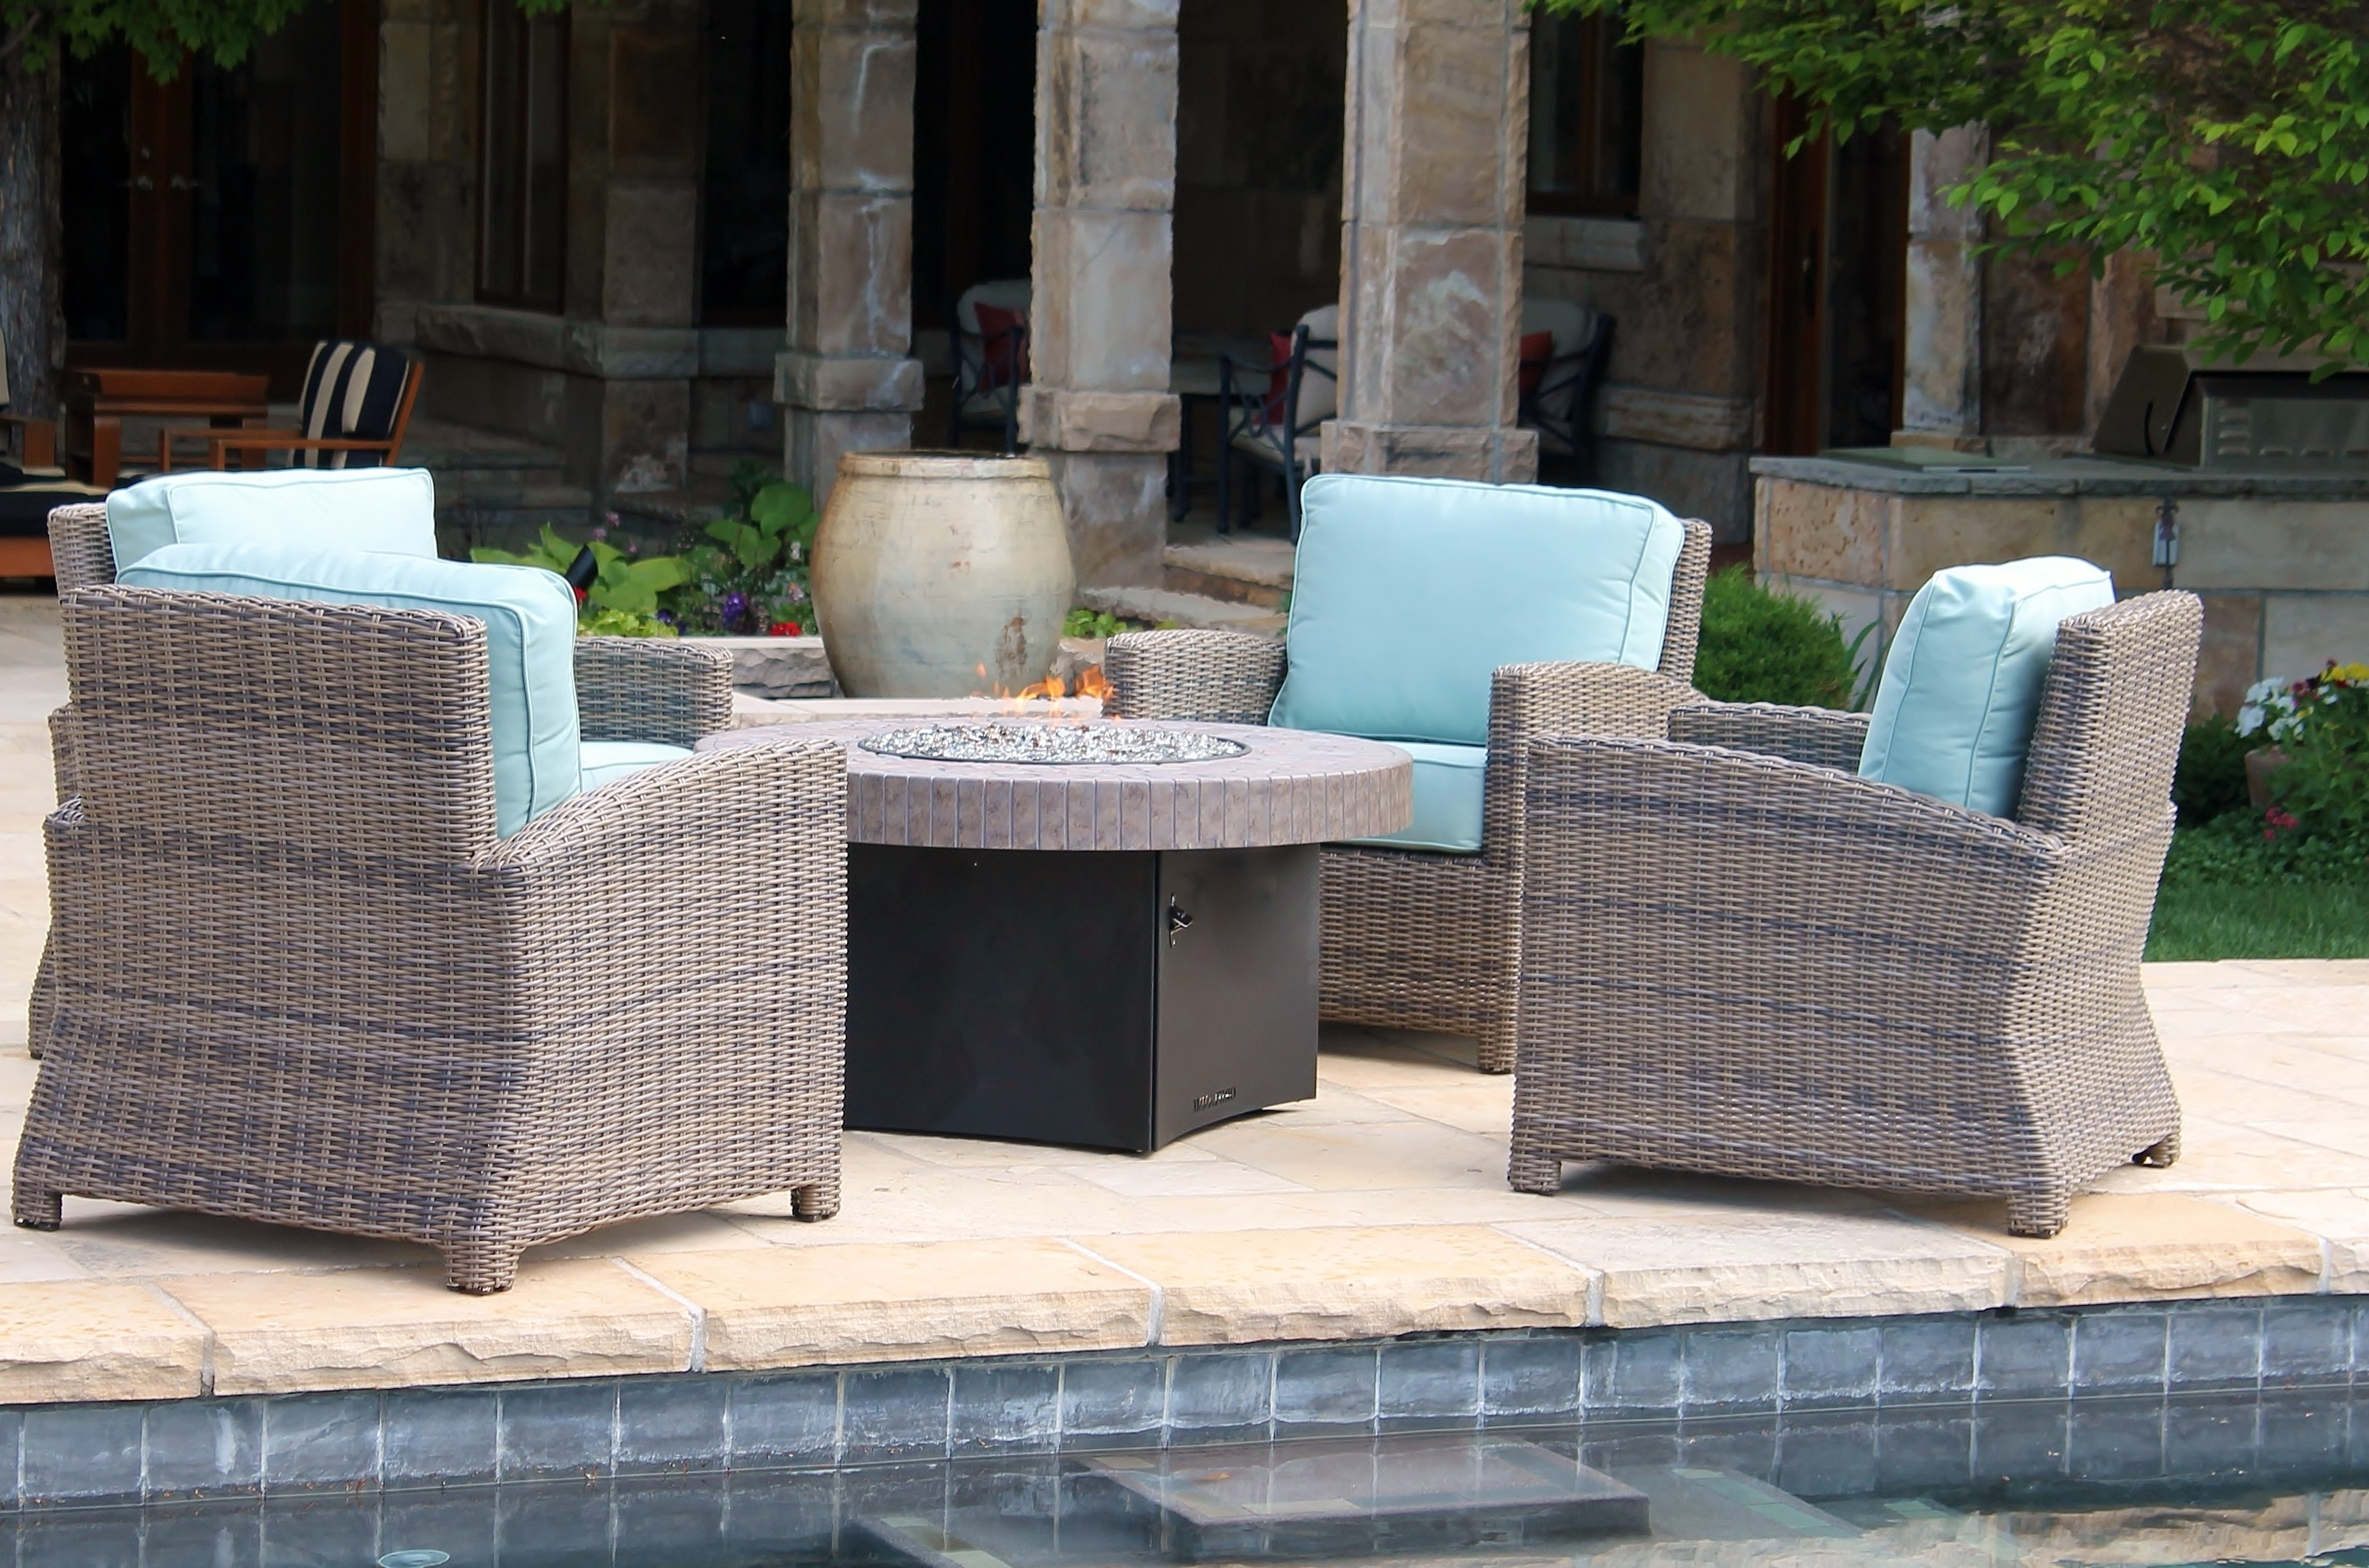 Widely Used Round Patio Conversation Sets Throughout Beautiful Round Propane Fire Pit Table And Chairs Conversation Sets (View 20 of 20)